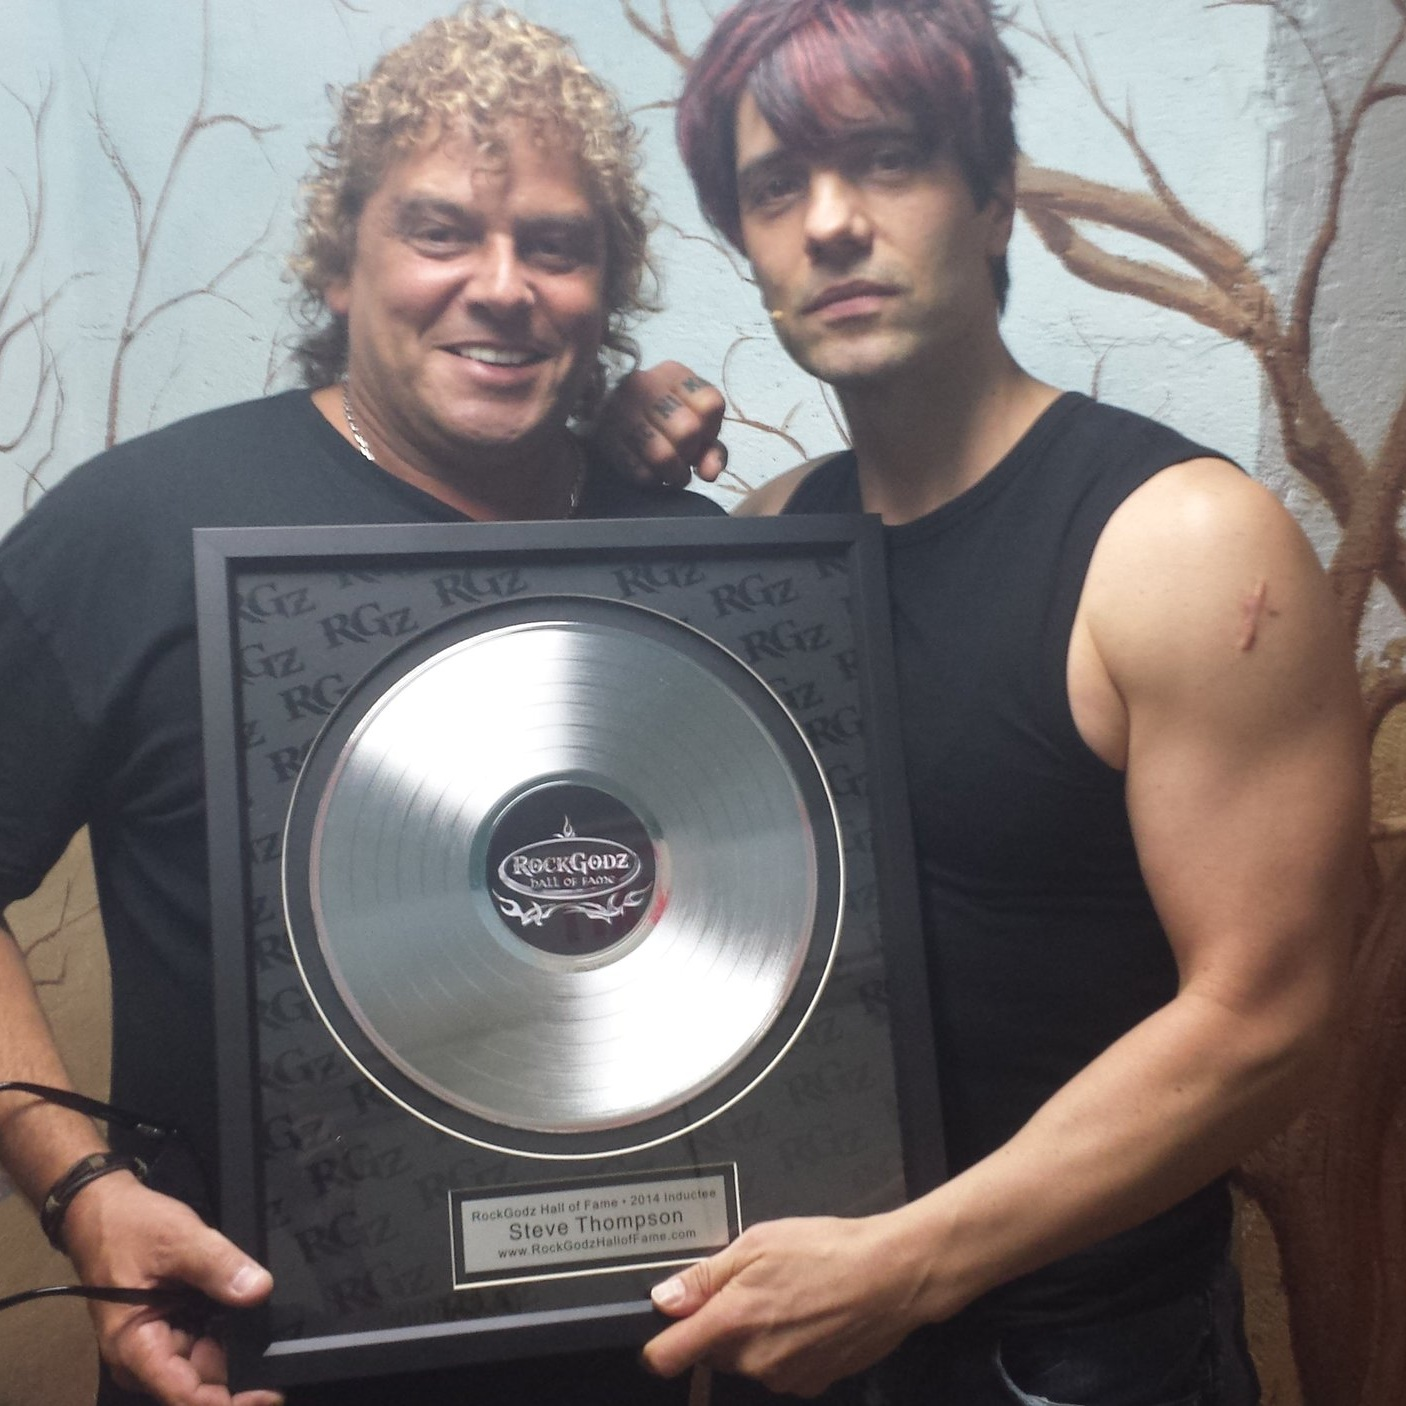 Criss Angel giving me the award for Rock Godz Hall of  Fame in Las Vegas, NV.